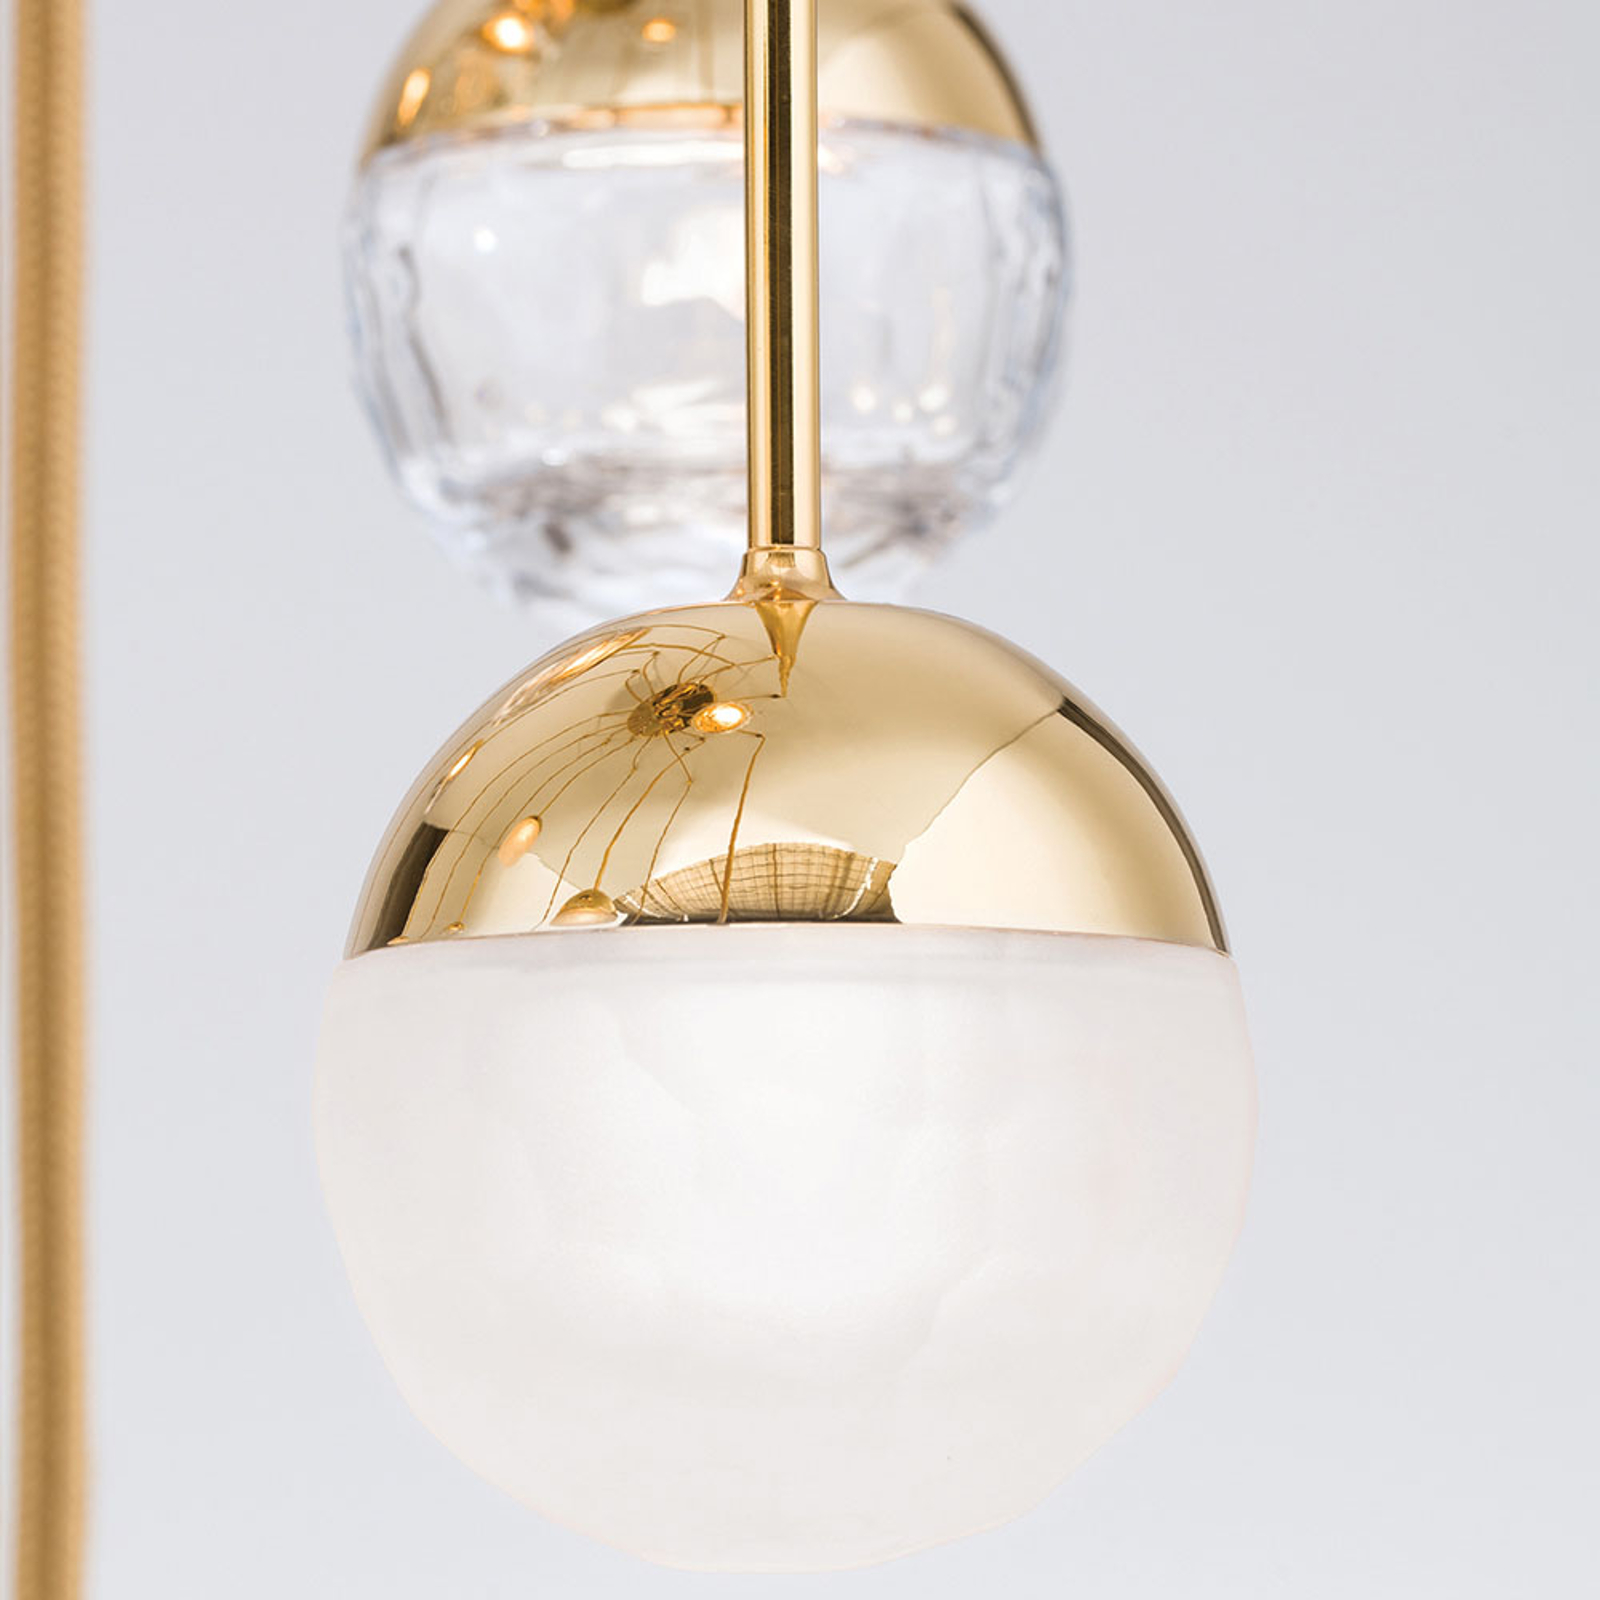 LED hanglamp Ball 15-lamps, goud, decentraal